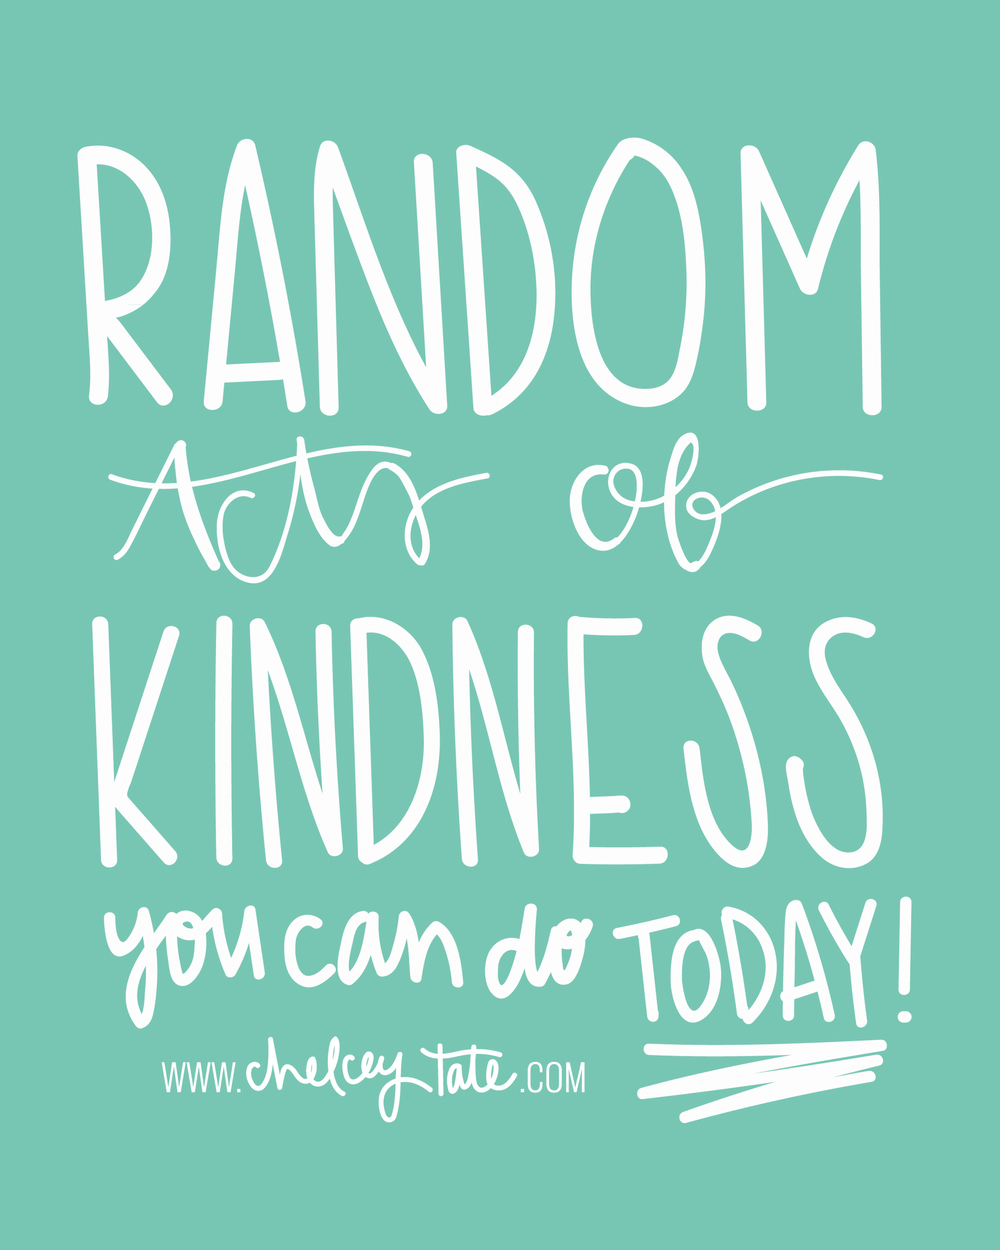 25 Easy Random Acts of Kindness You Can Do Today www.chelceytate.com